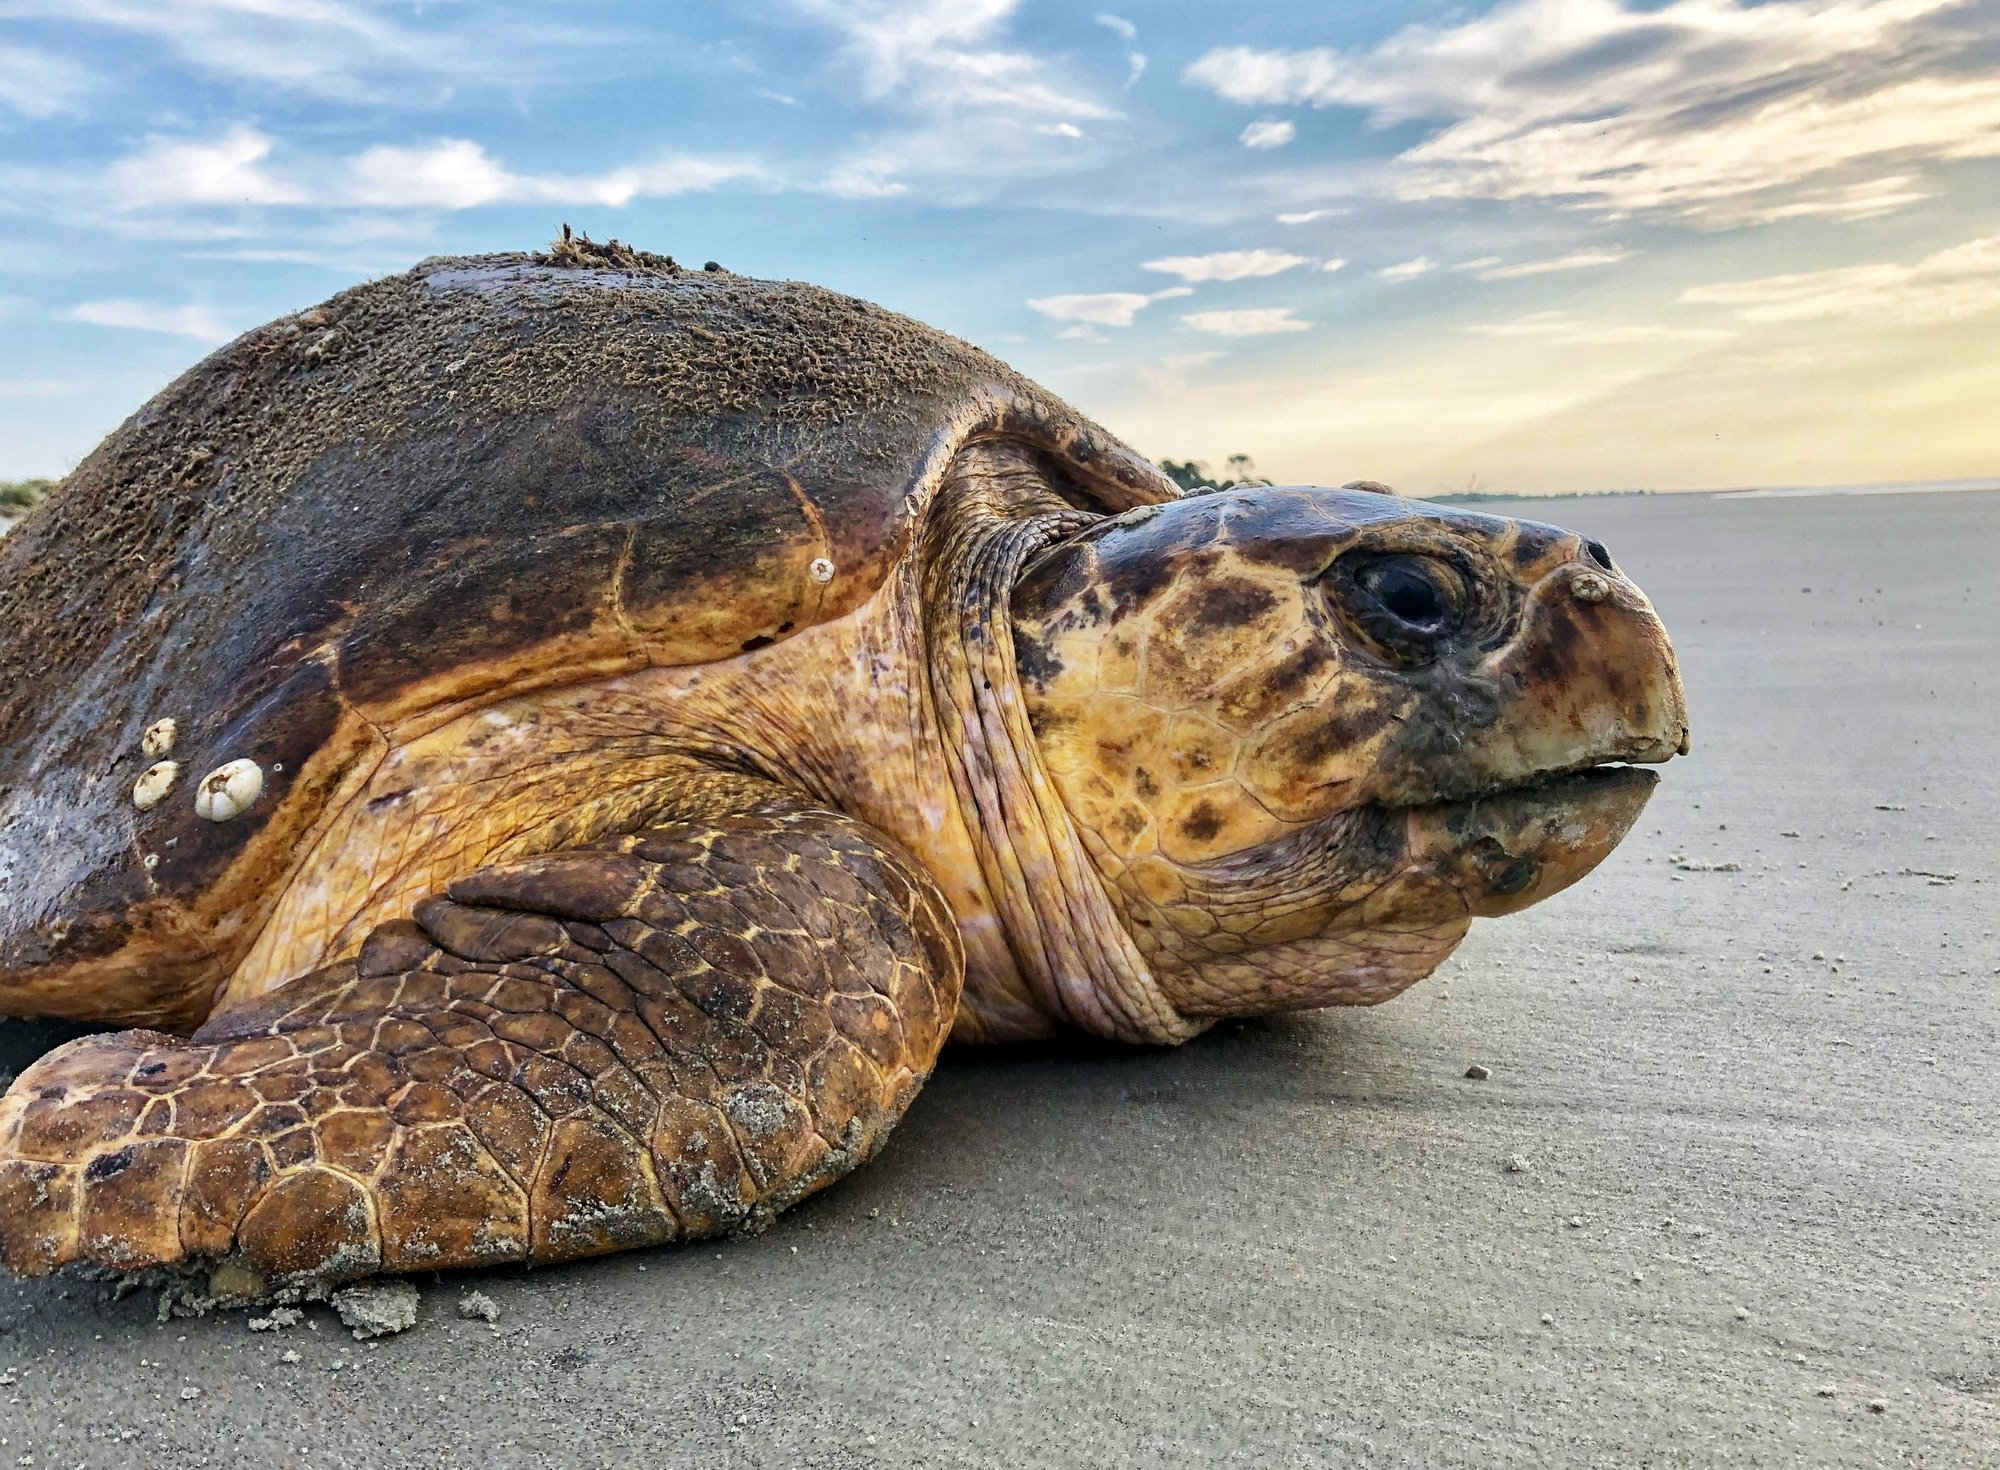 Rare sea turtles smash nesting records in Georgia, Carolinas